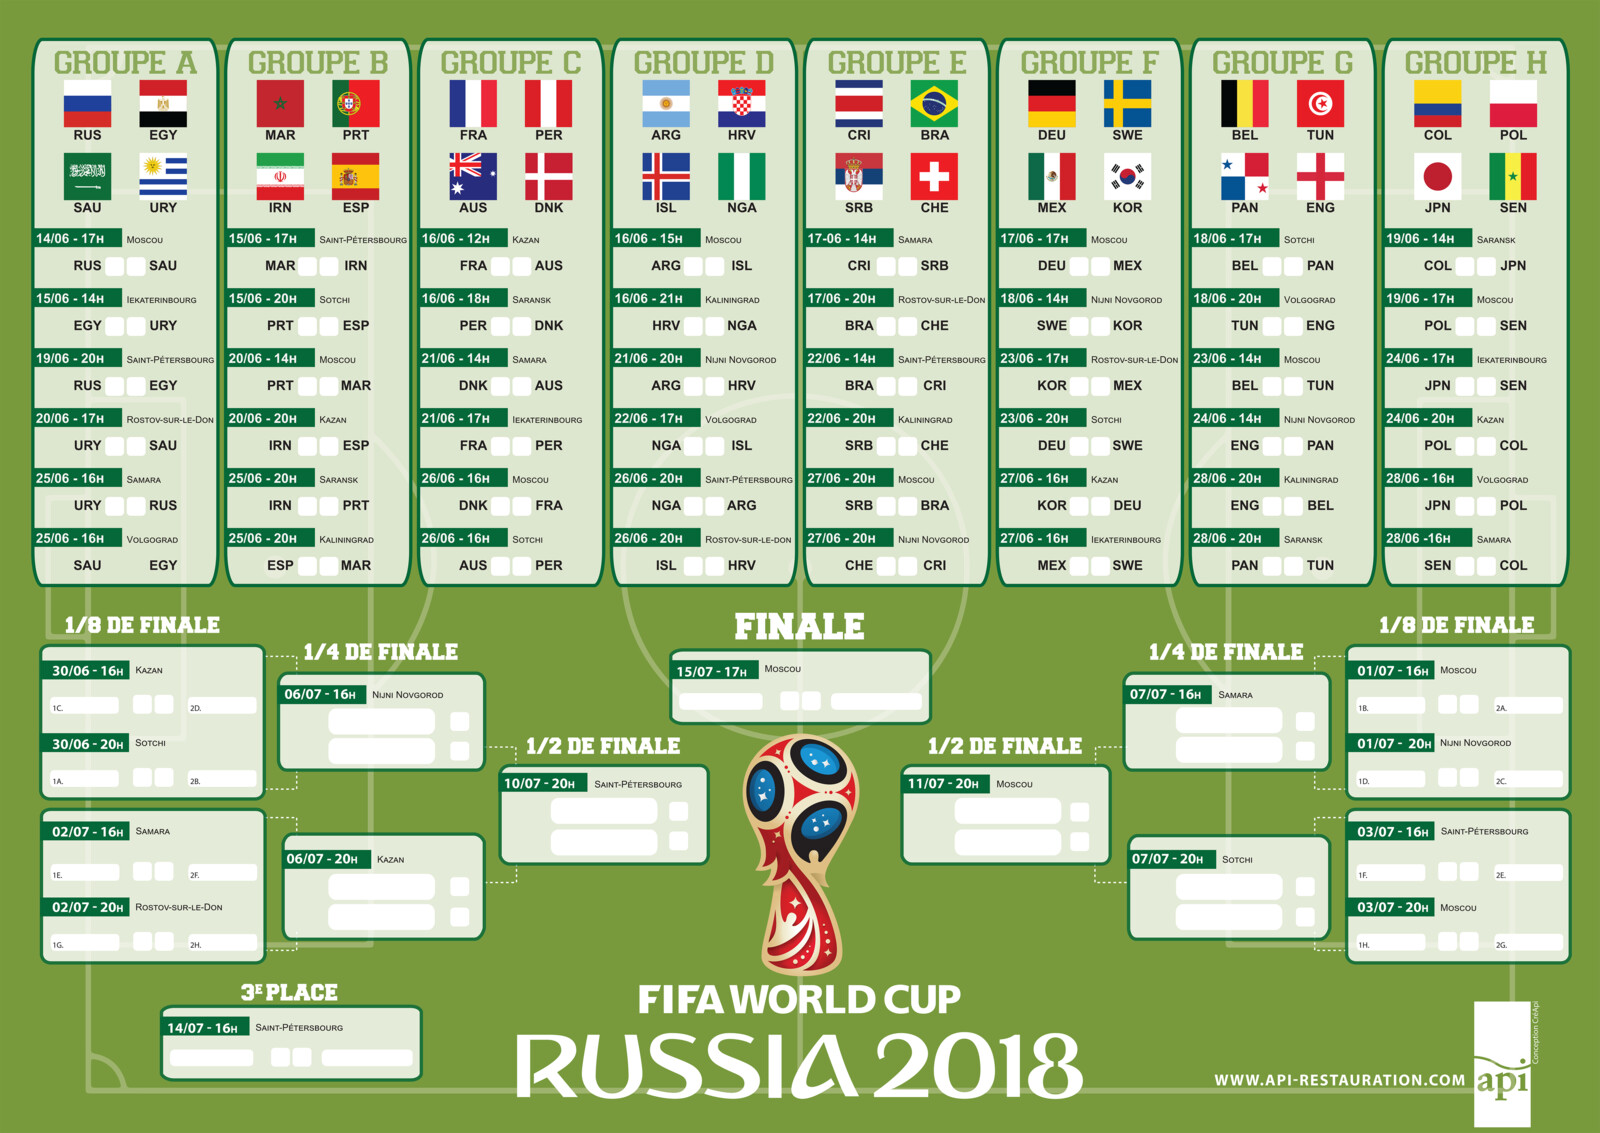 PRINT / FIFA WORLD CUP 2018